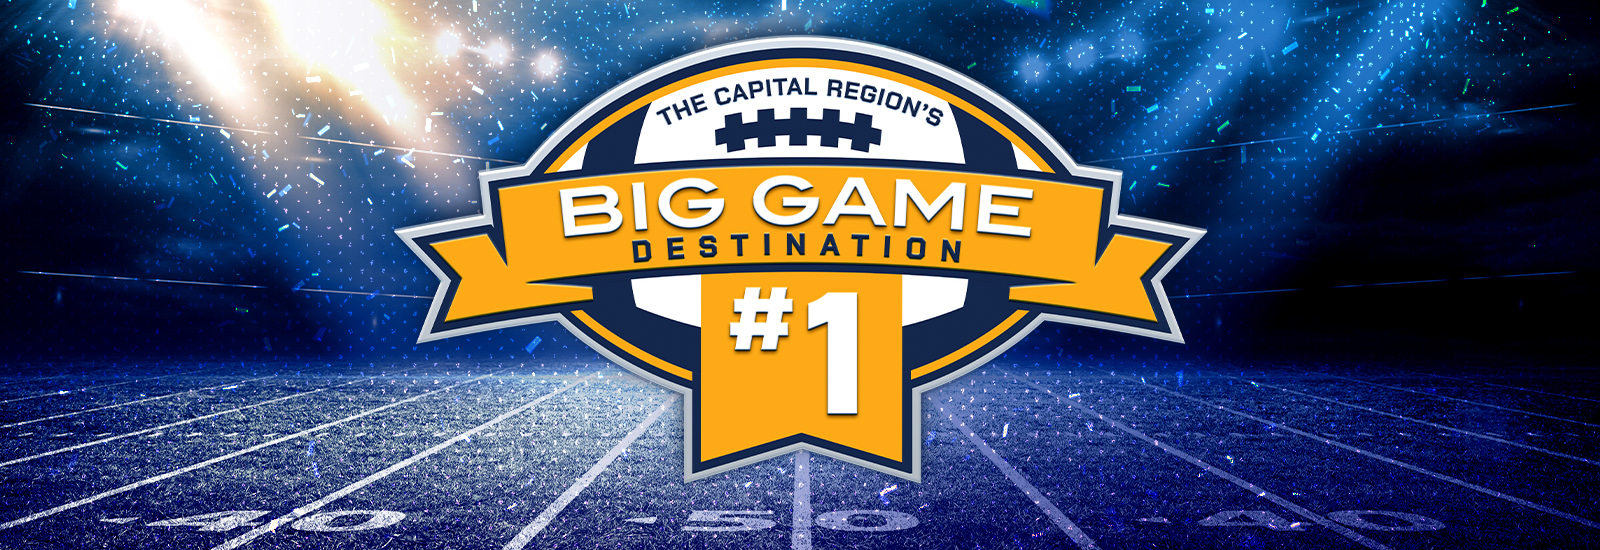 Big Game Destination